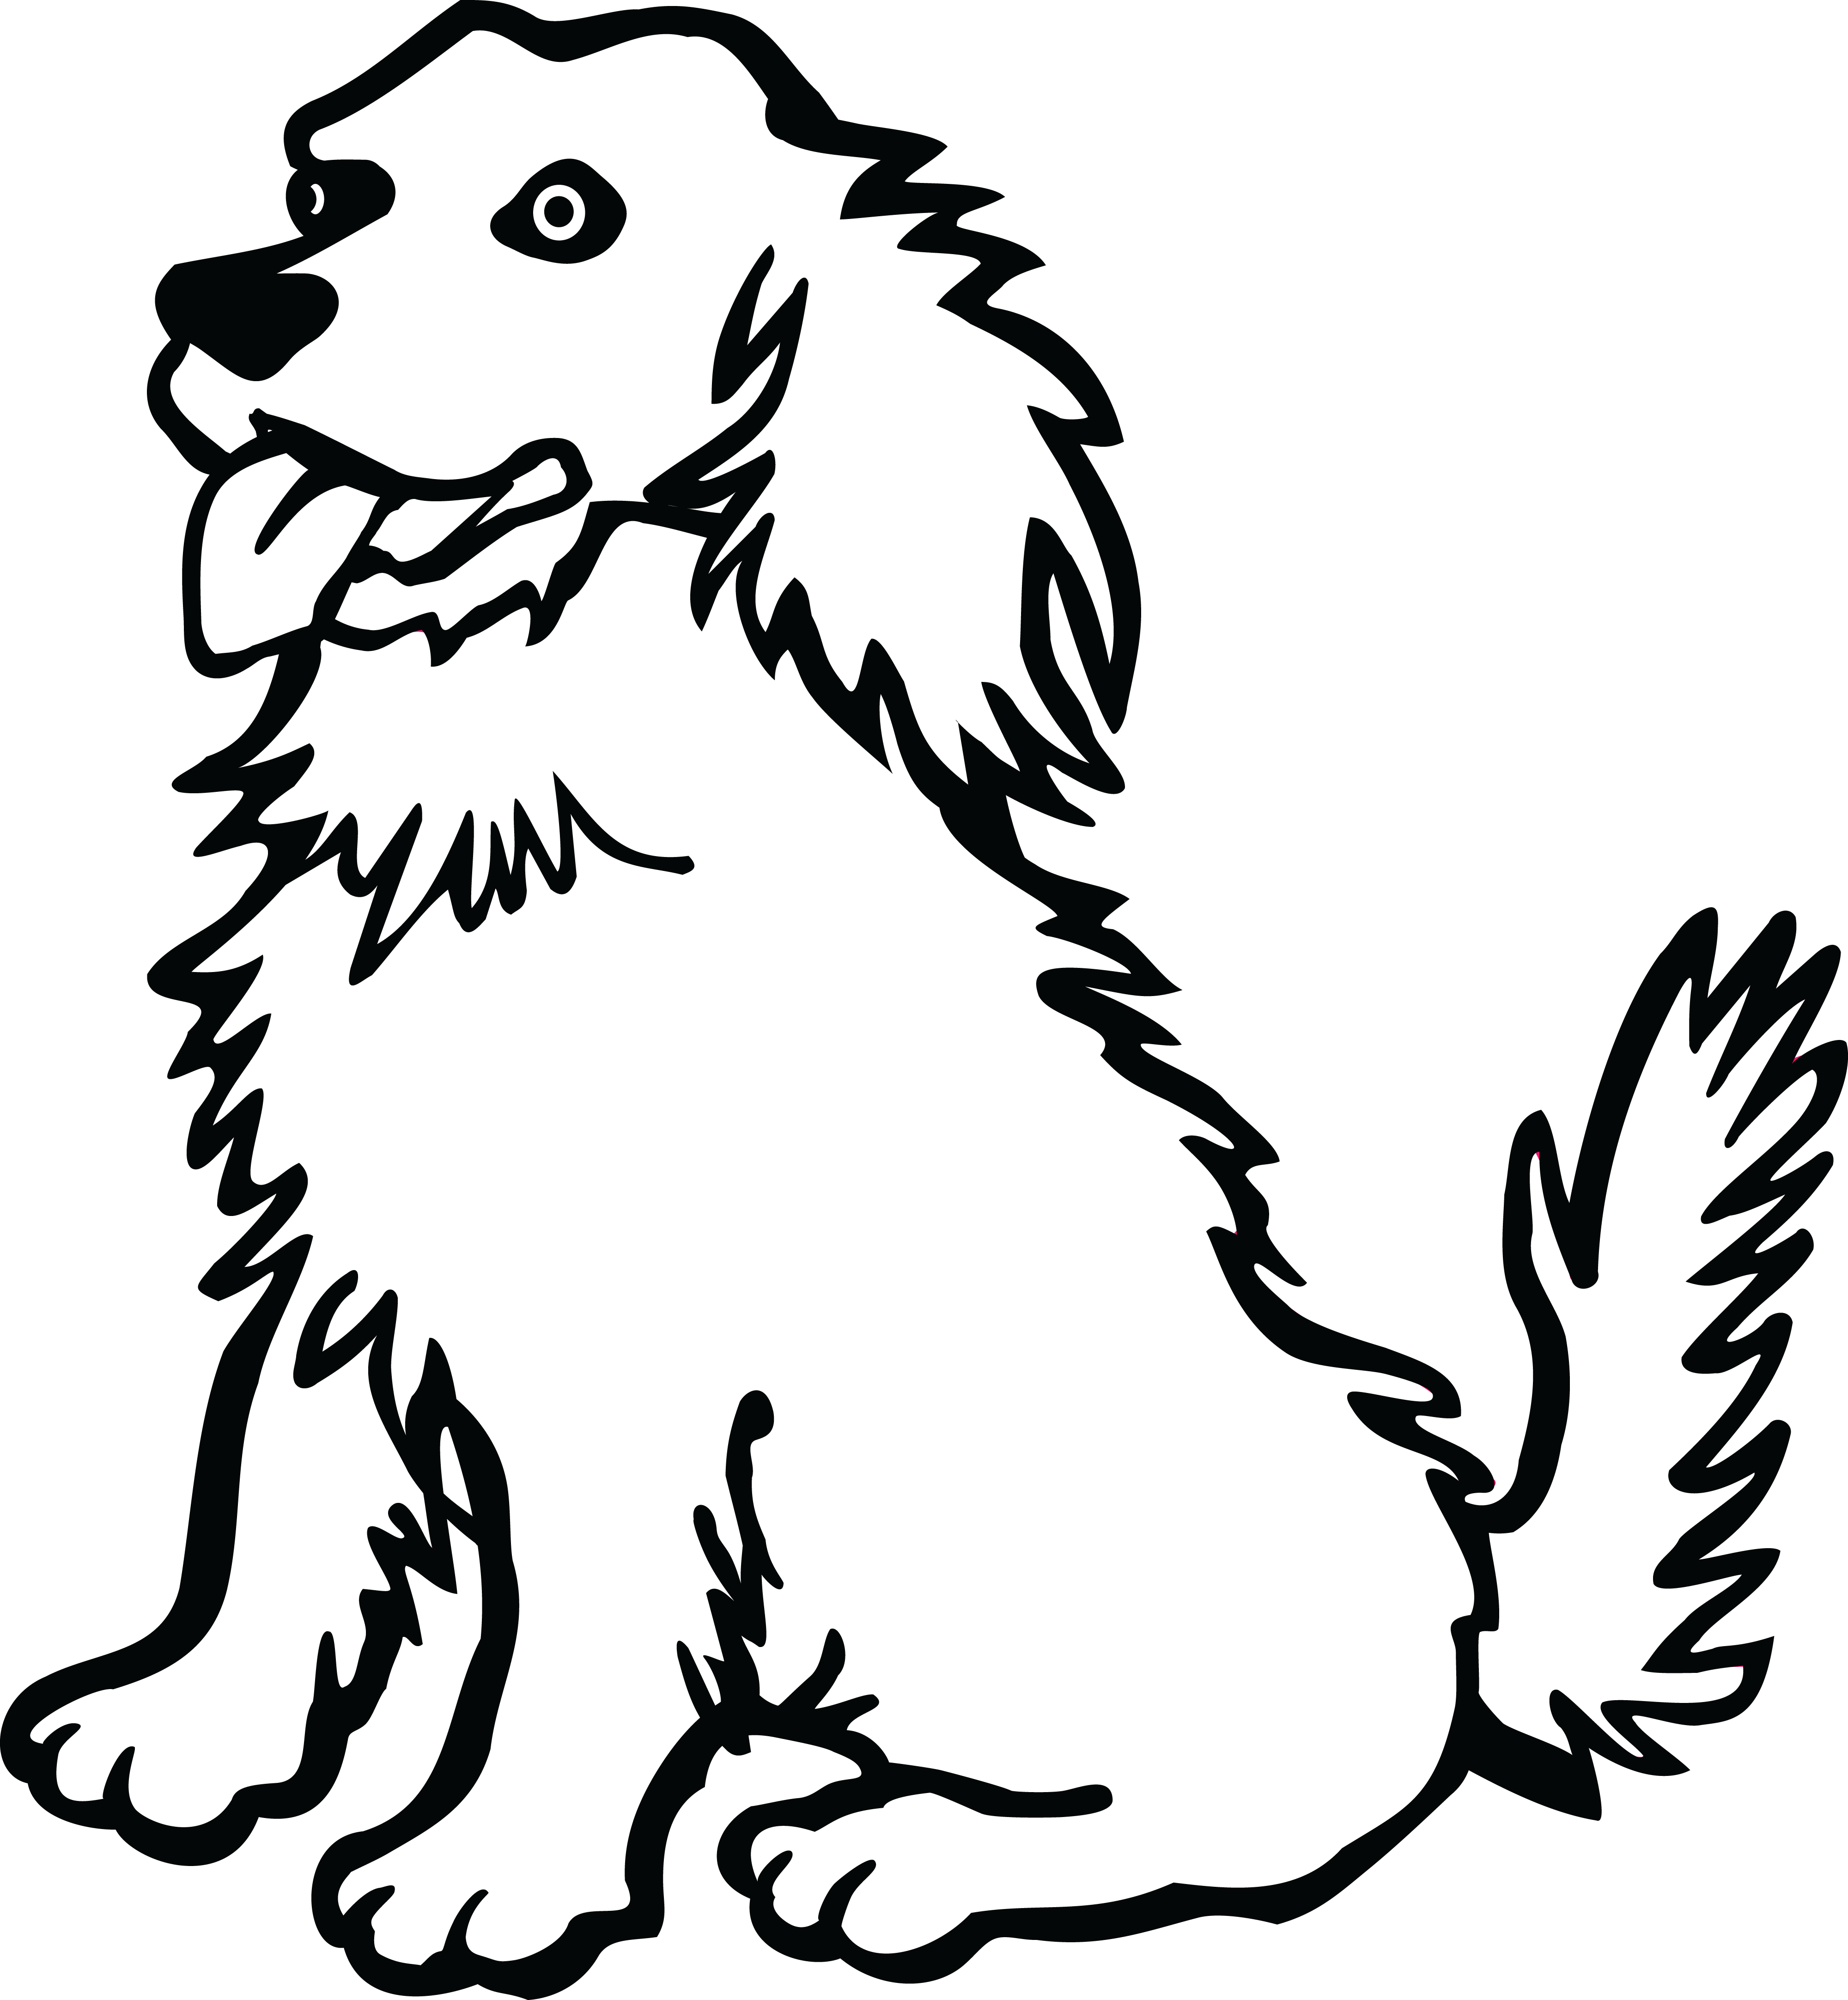 image black and white stock Free png of dogs. Dog clipart black and white.